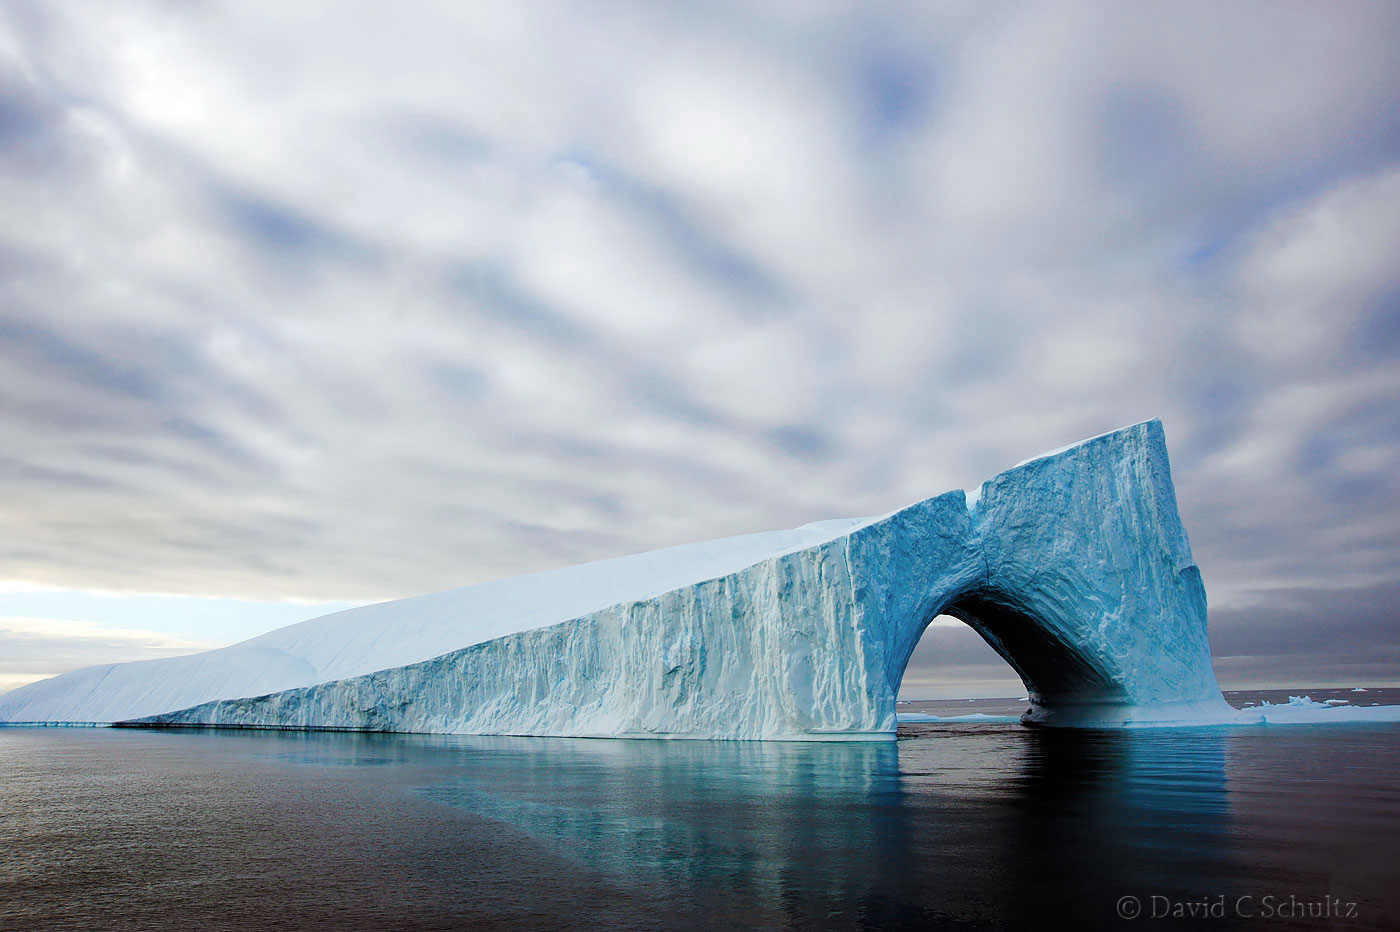 Iceberg in Baffin Bay near Greenland - Image #167-0679